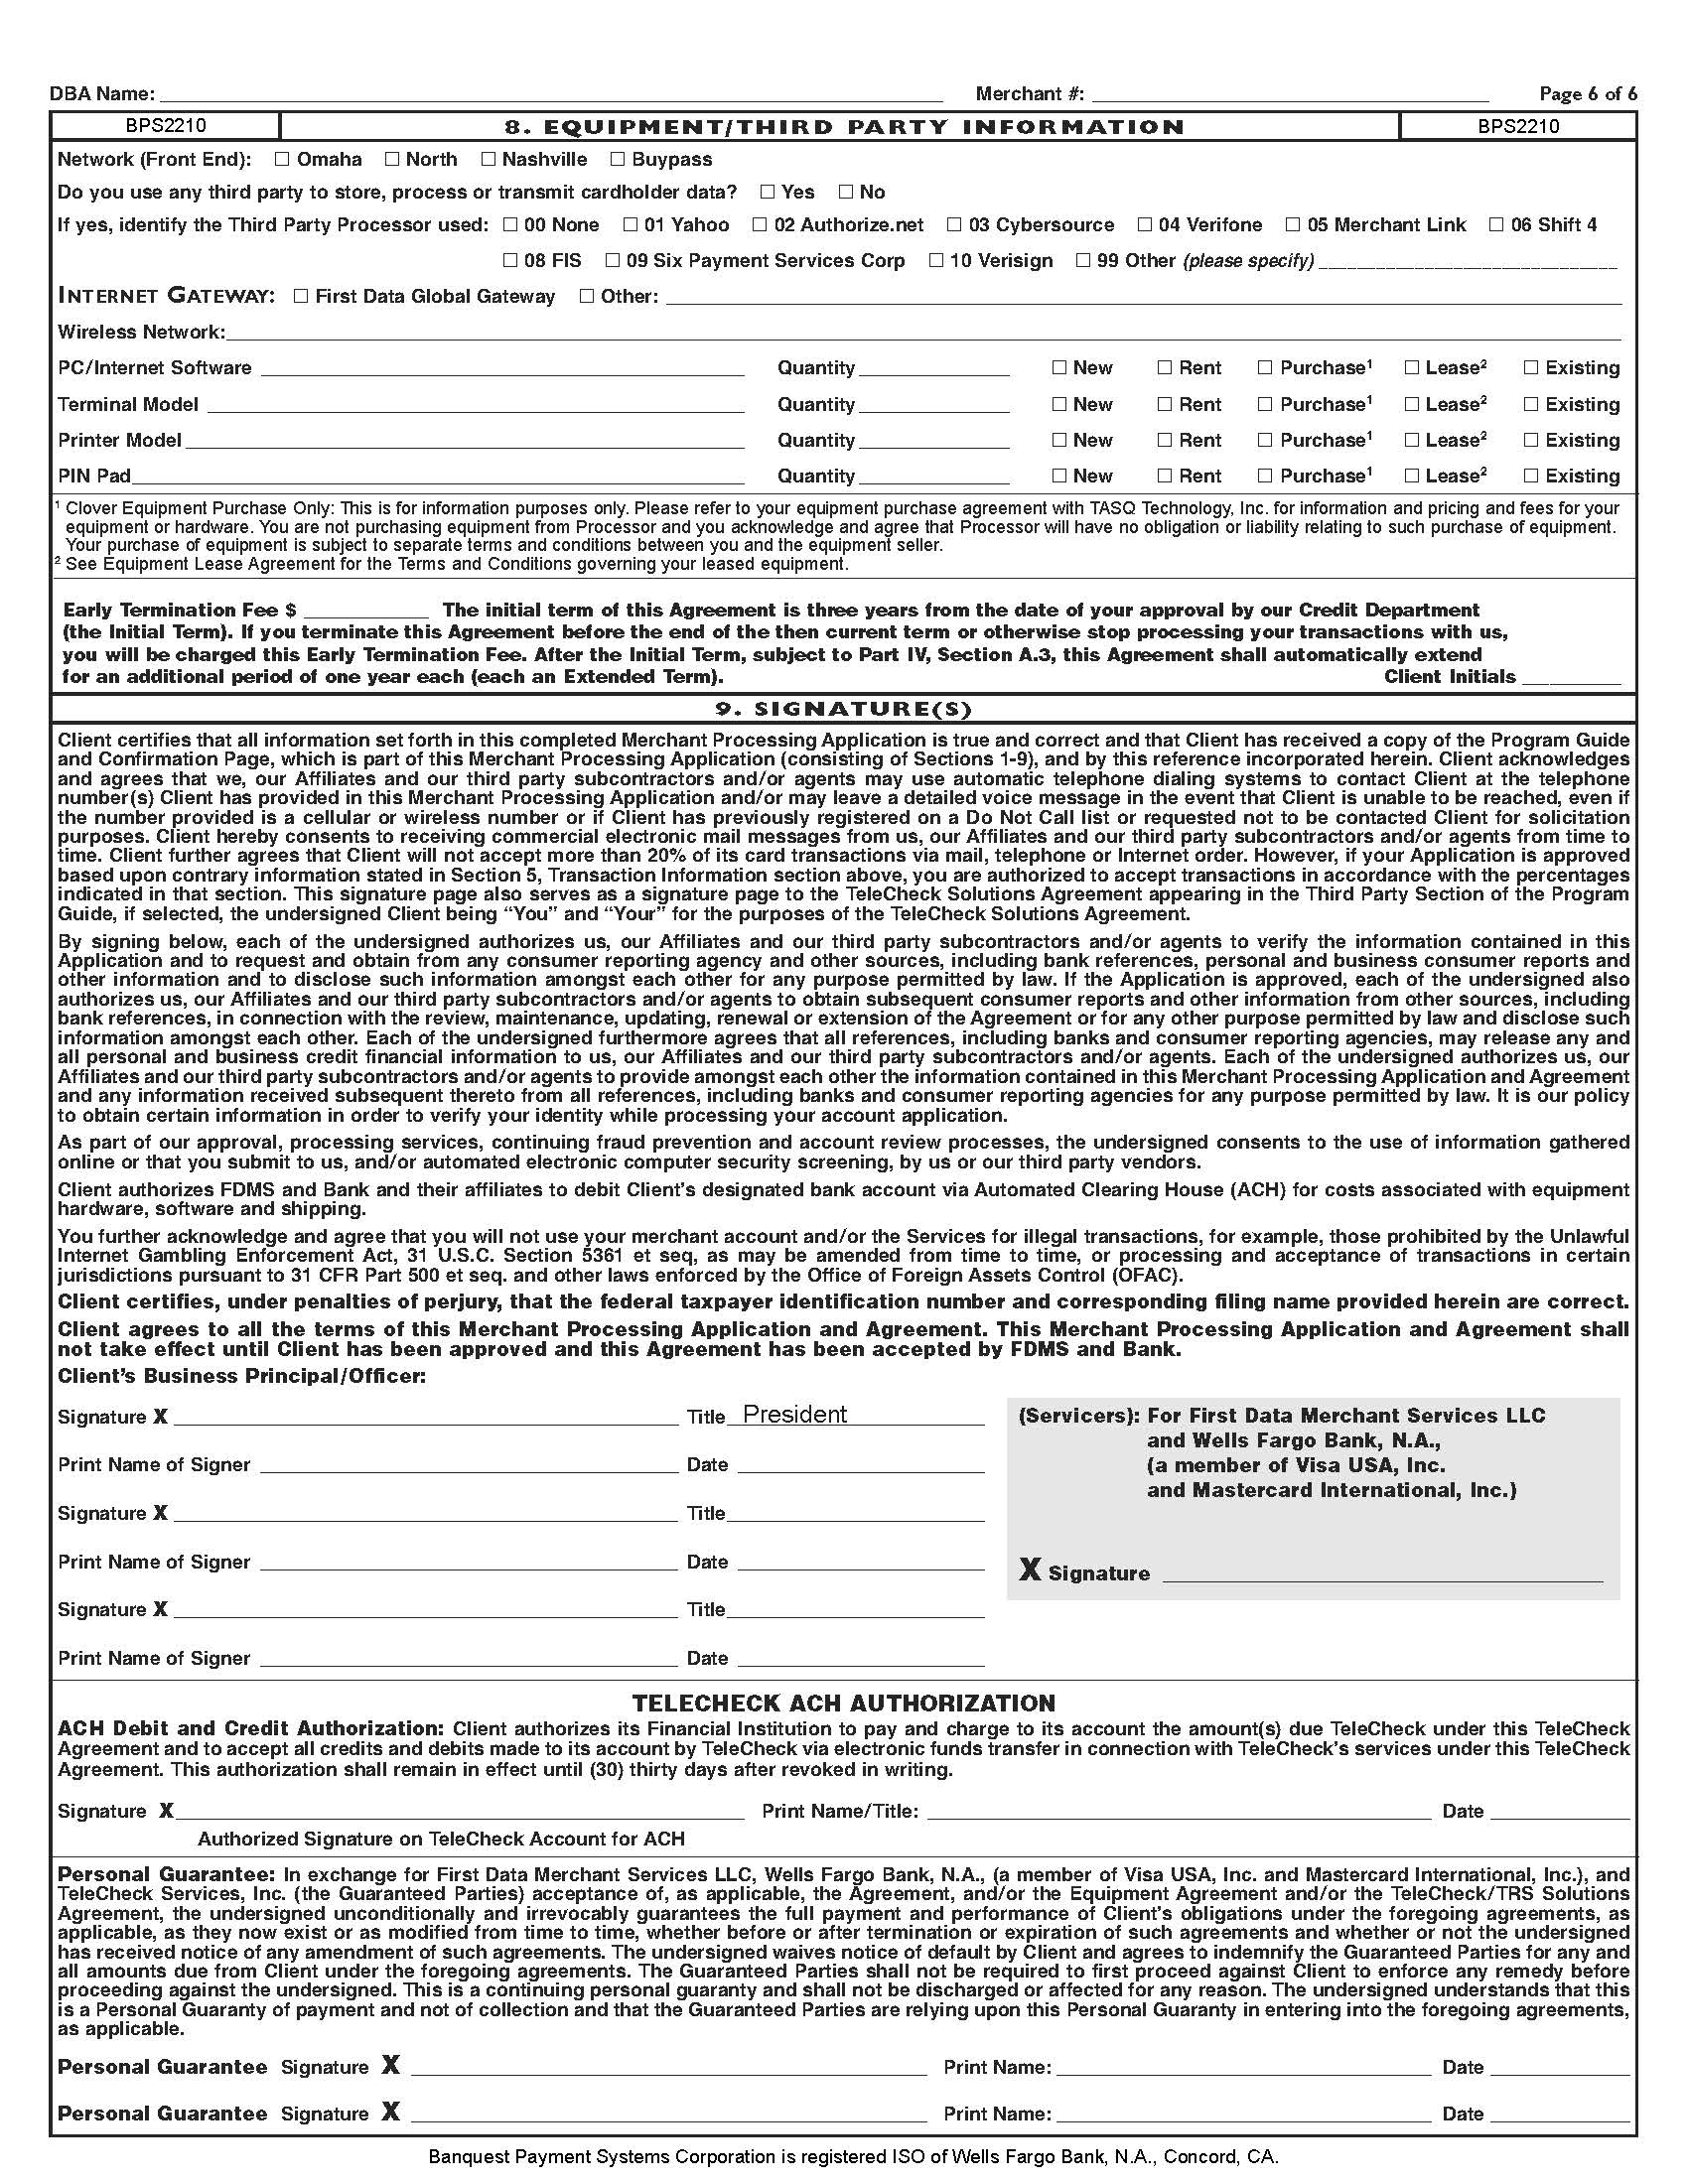 Merchant application form 3 signatures needed ccuart Image collections